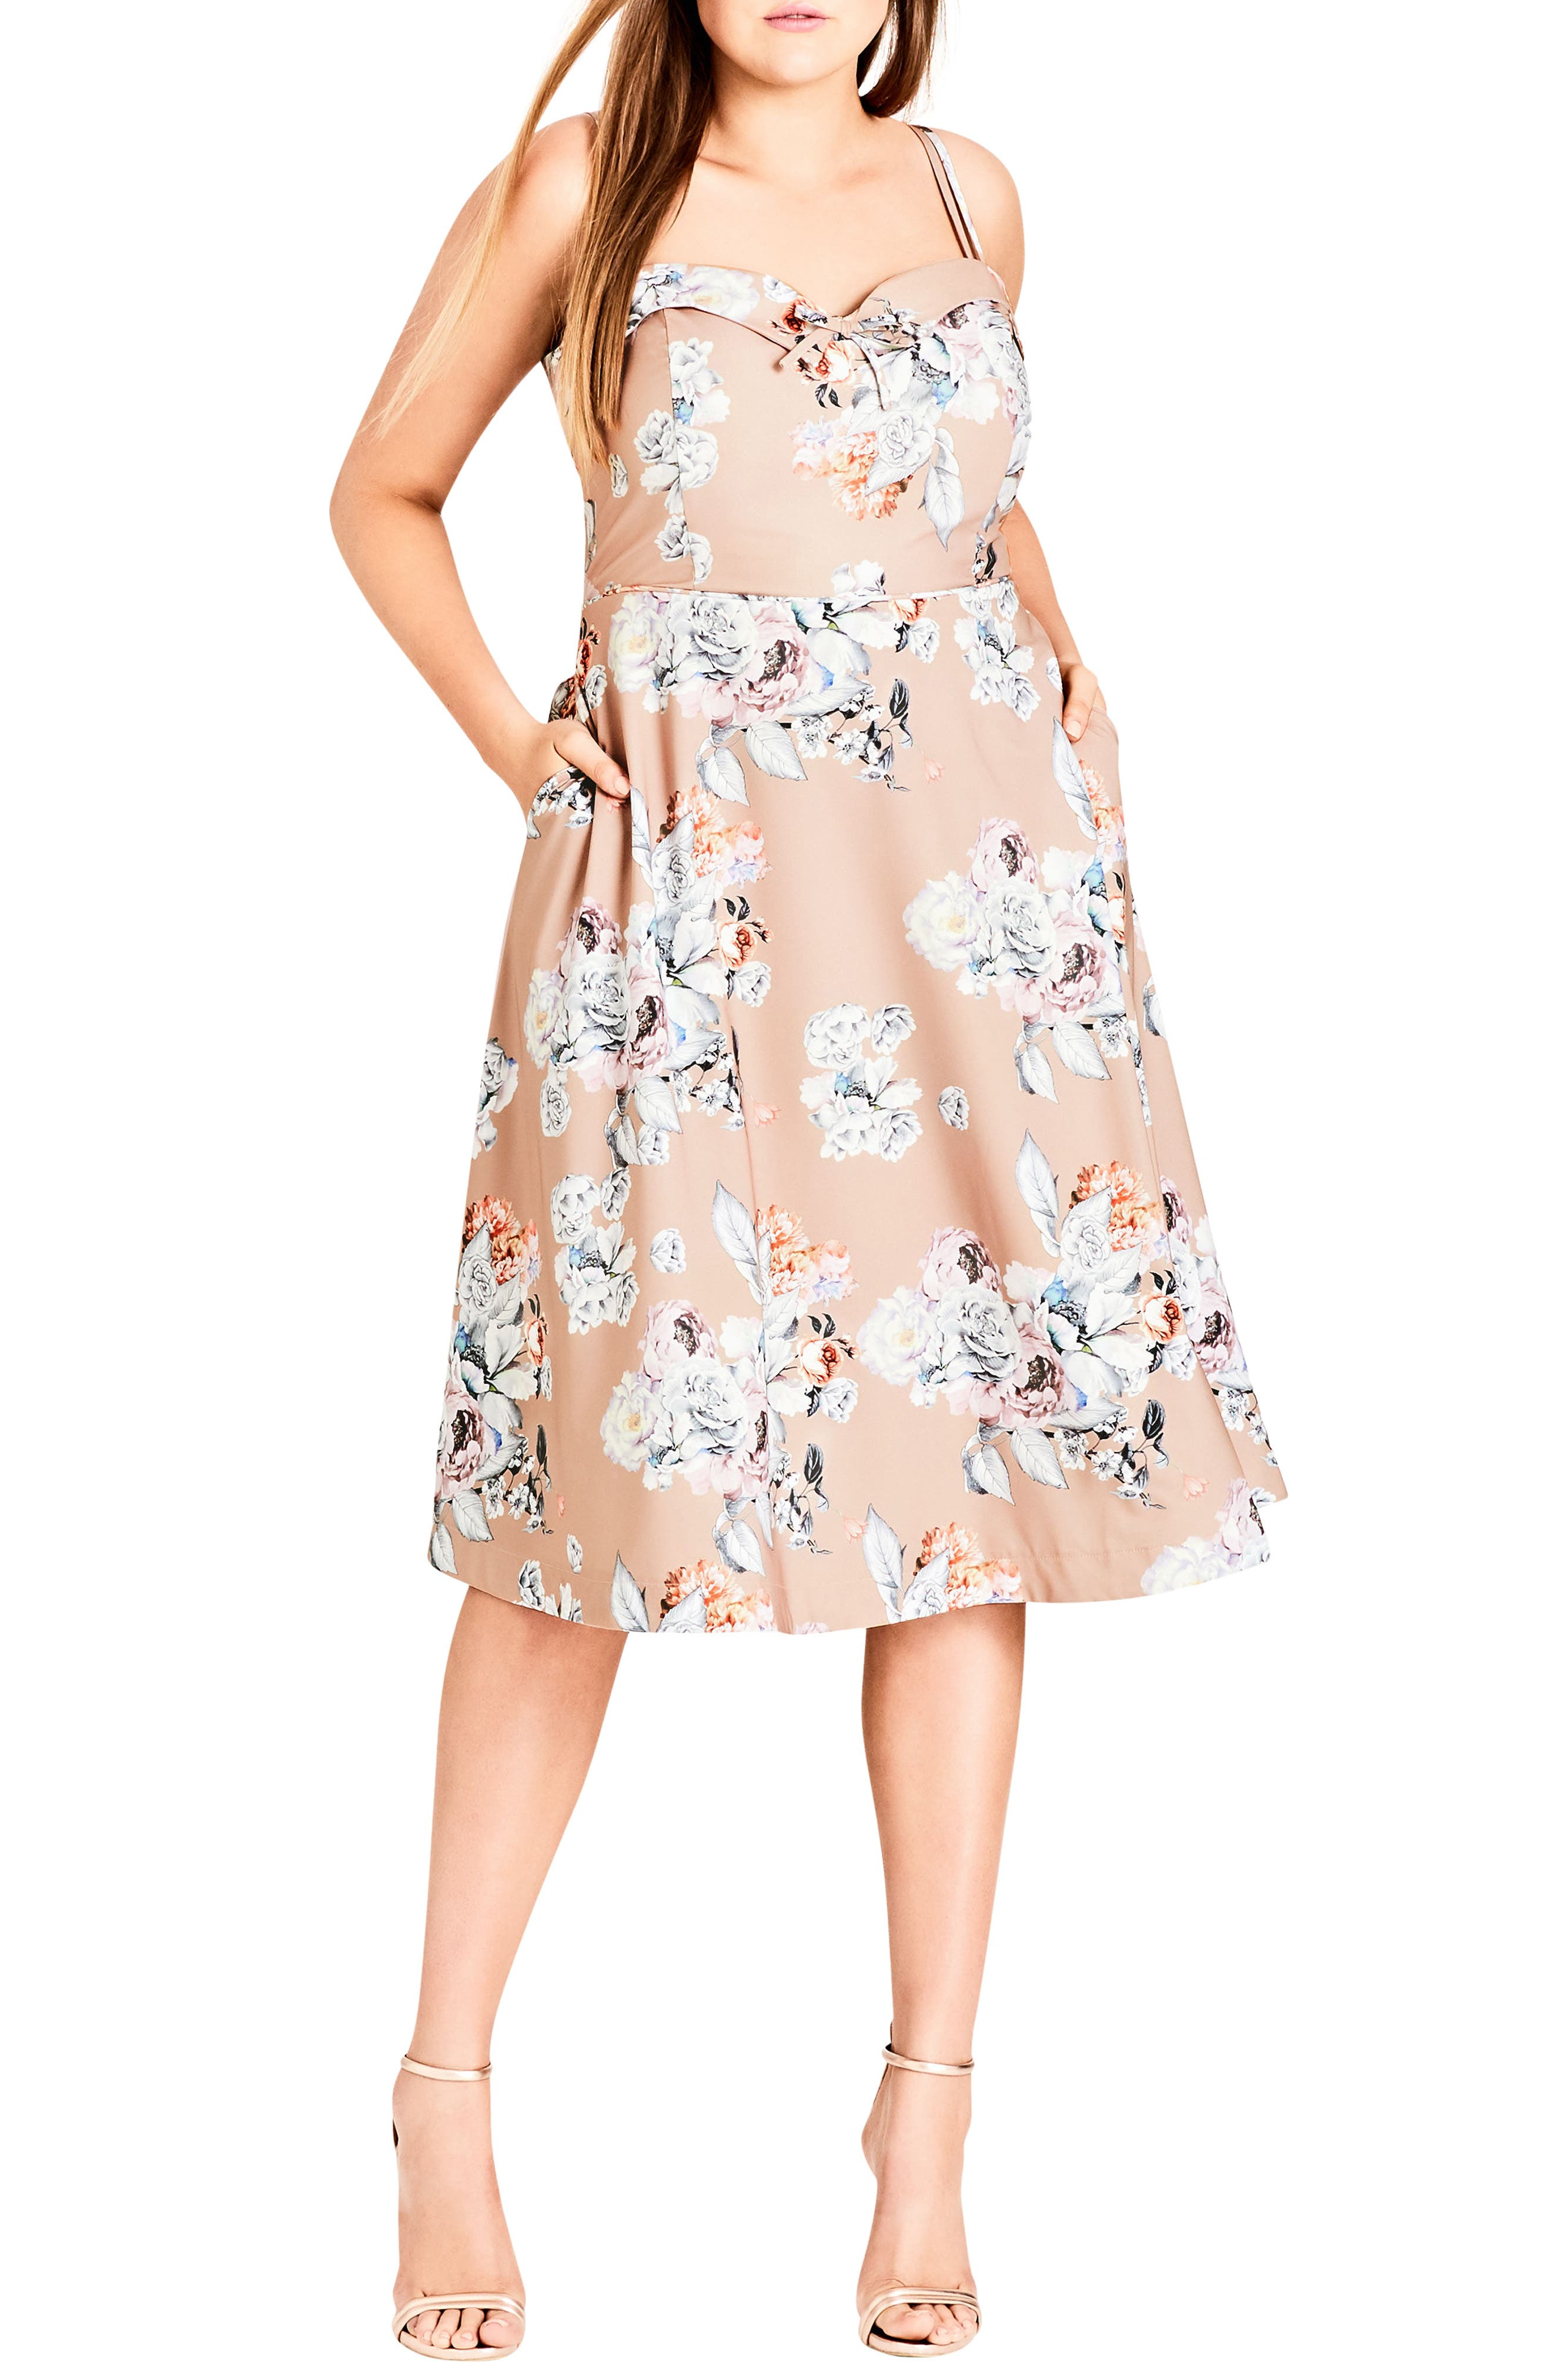 Paper Floral Tea Length Dress,                             Main thumbnail 1, color,                             Paper Floral